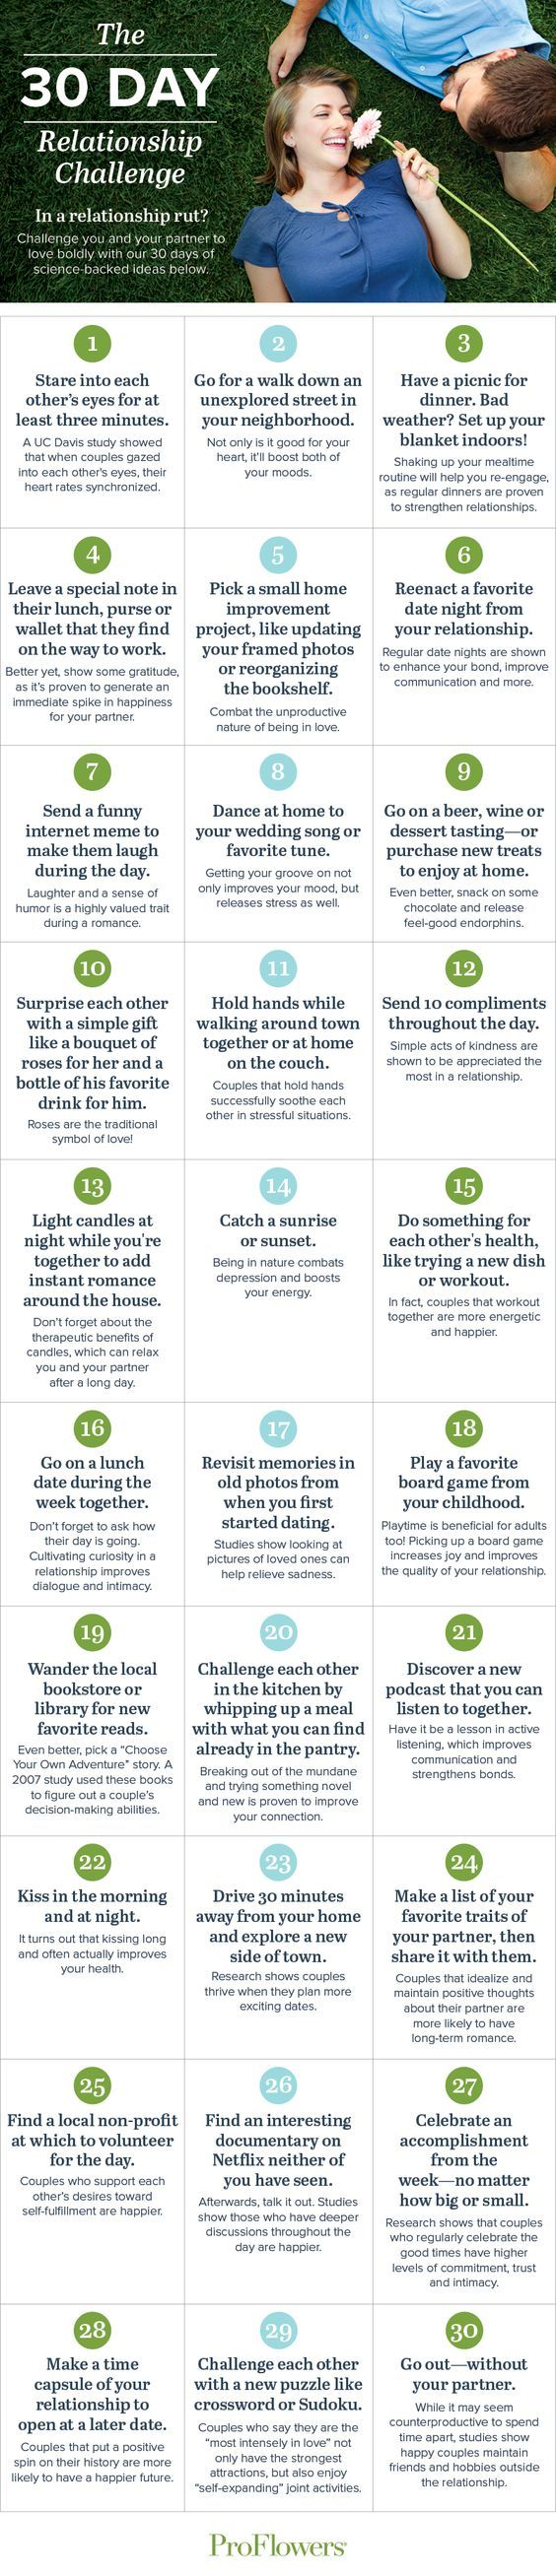 We're here to challenge you and your partner to love boldly with our 30 day relationship calendar. Bring the fireworks back to your relationship!